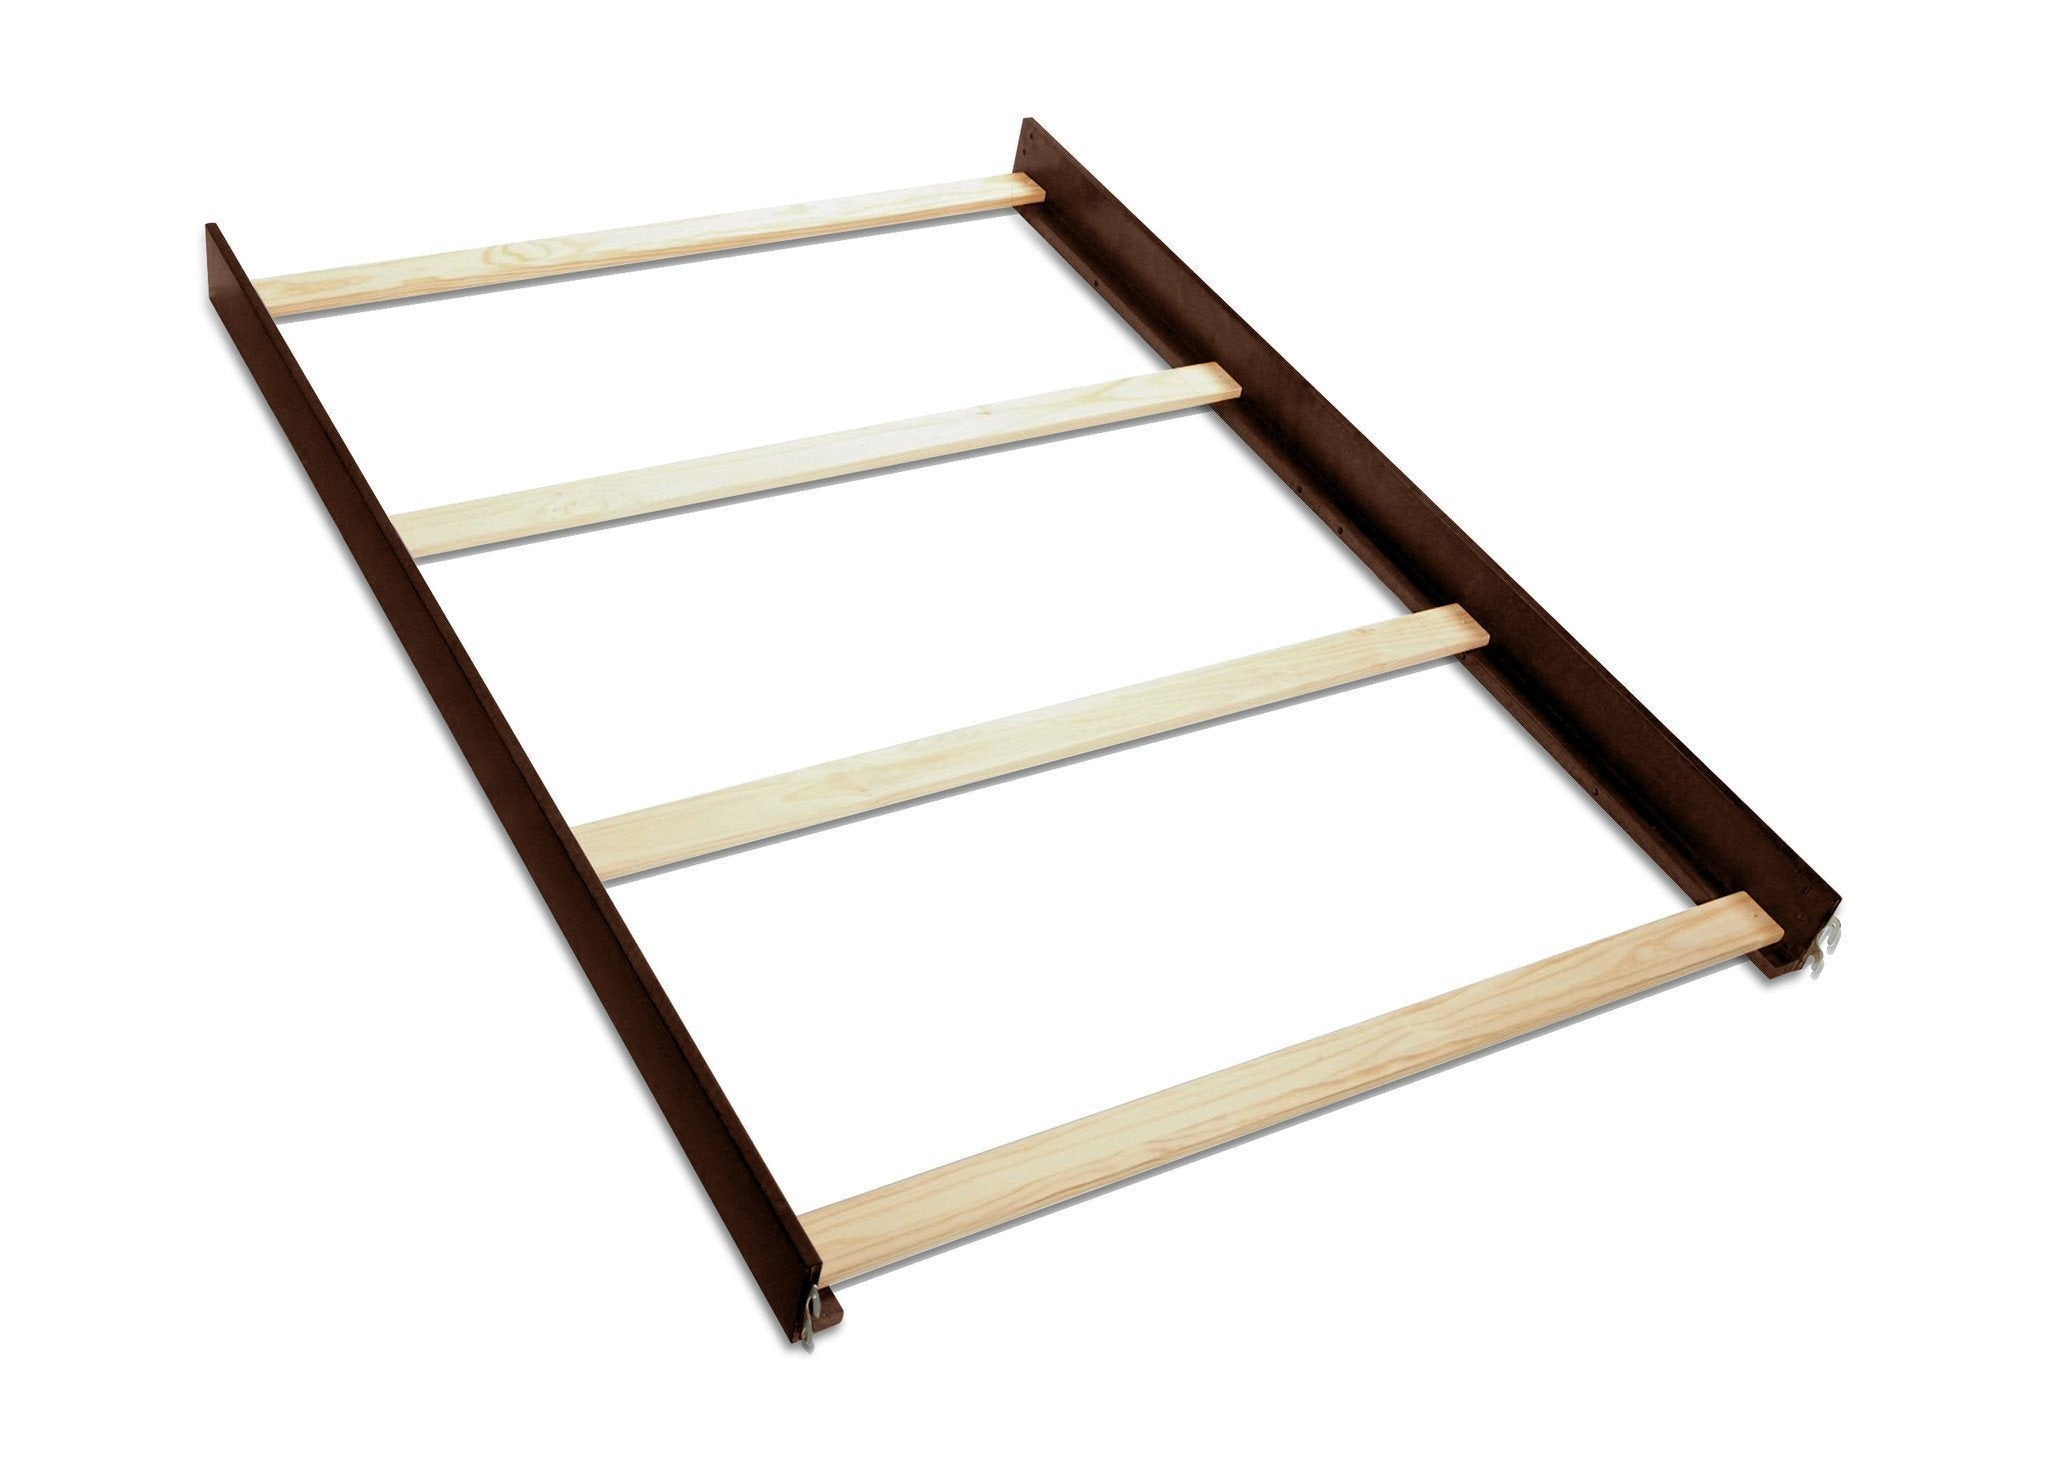 Simmons Kids Caffe (247) Wood Bed Rails (180080) aaa1aaa